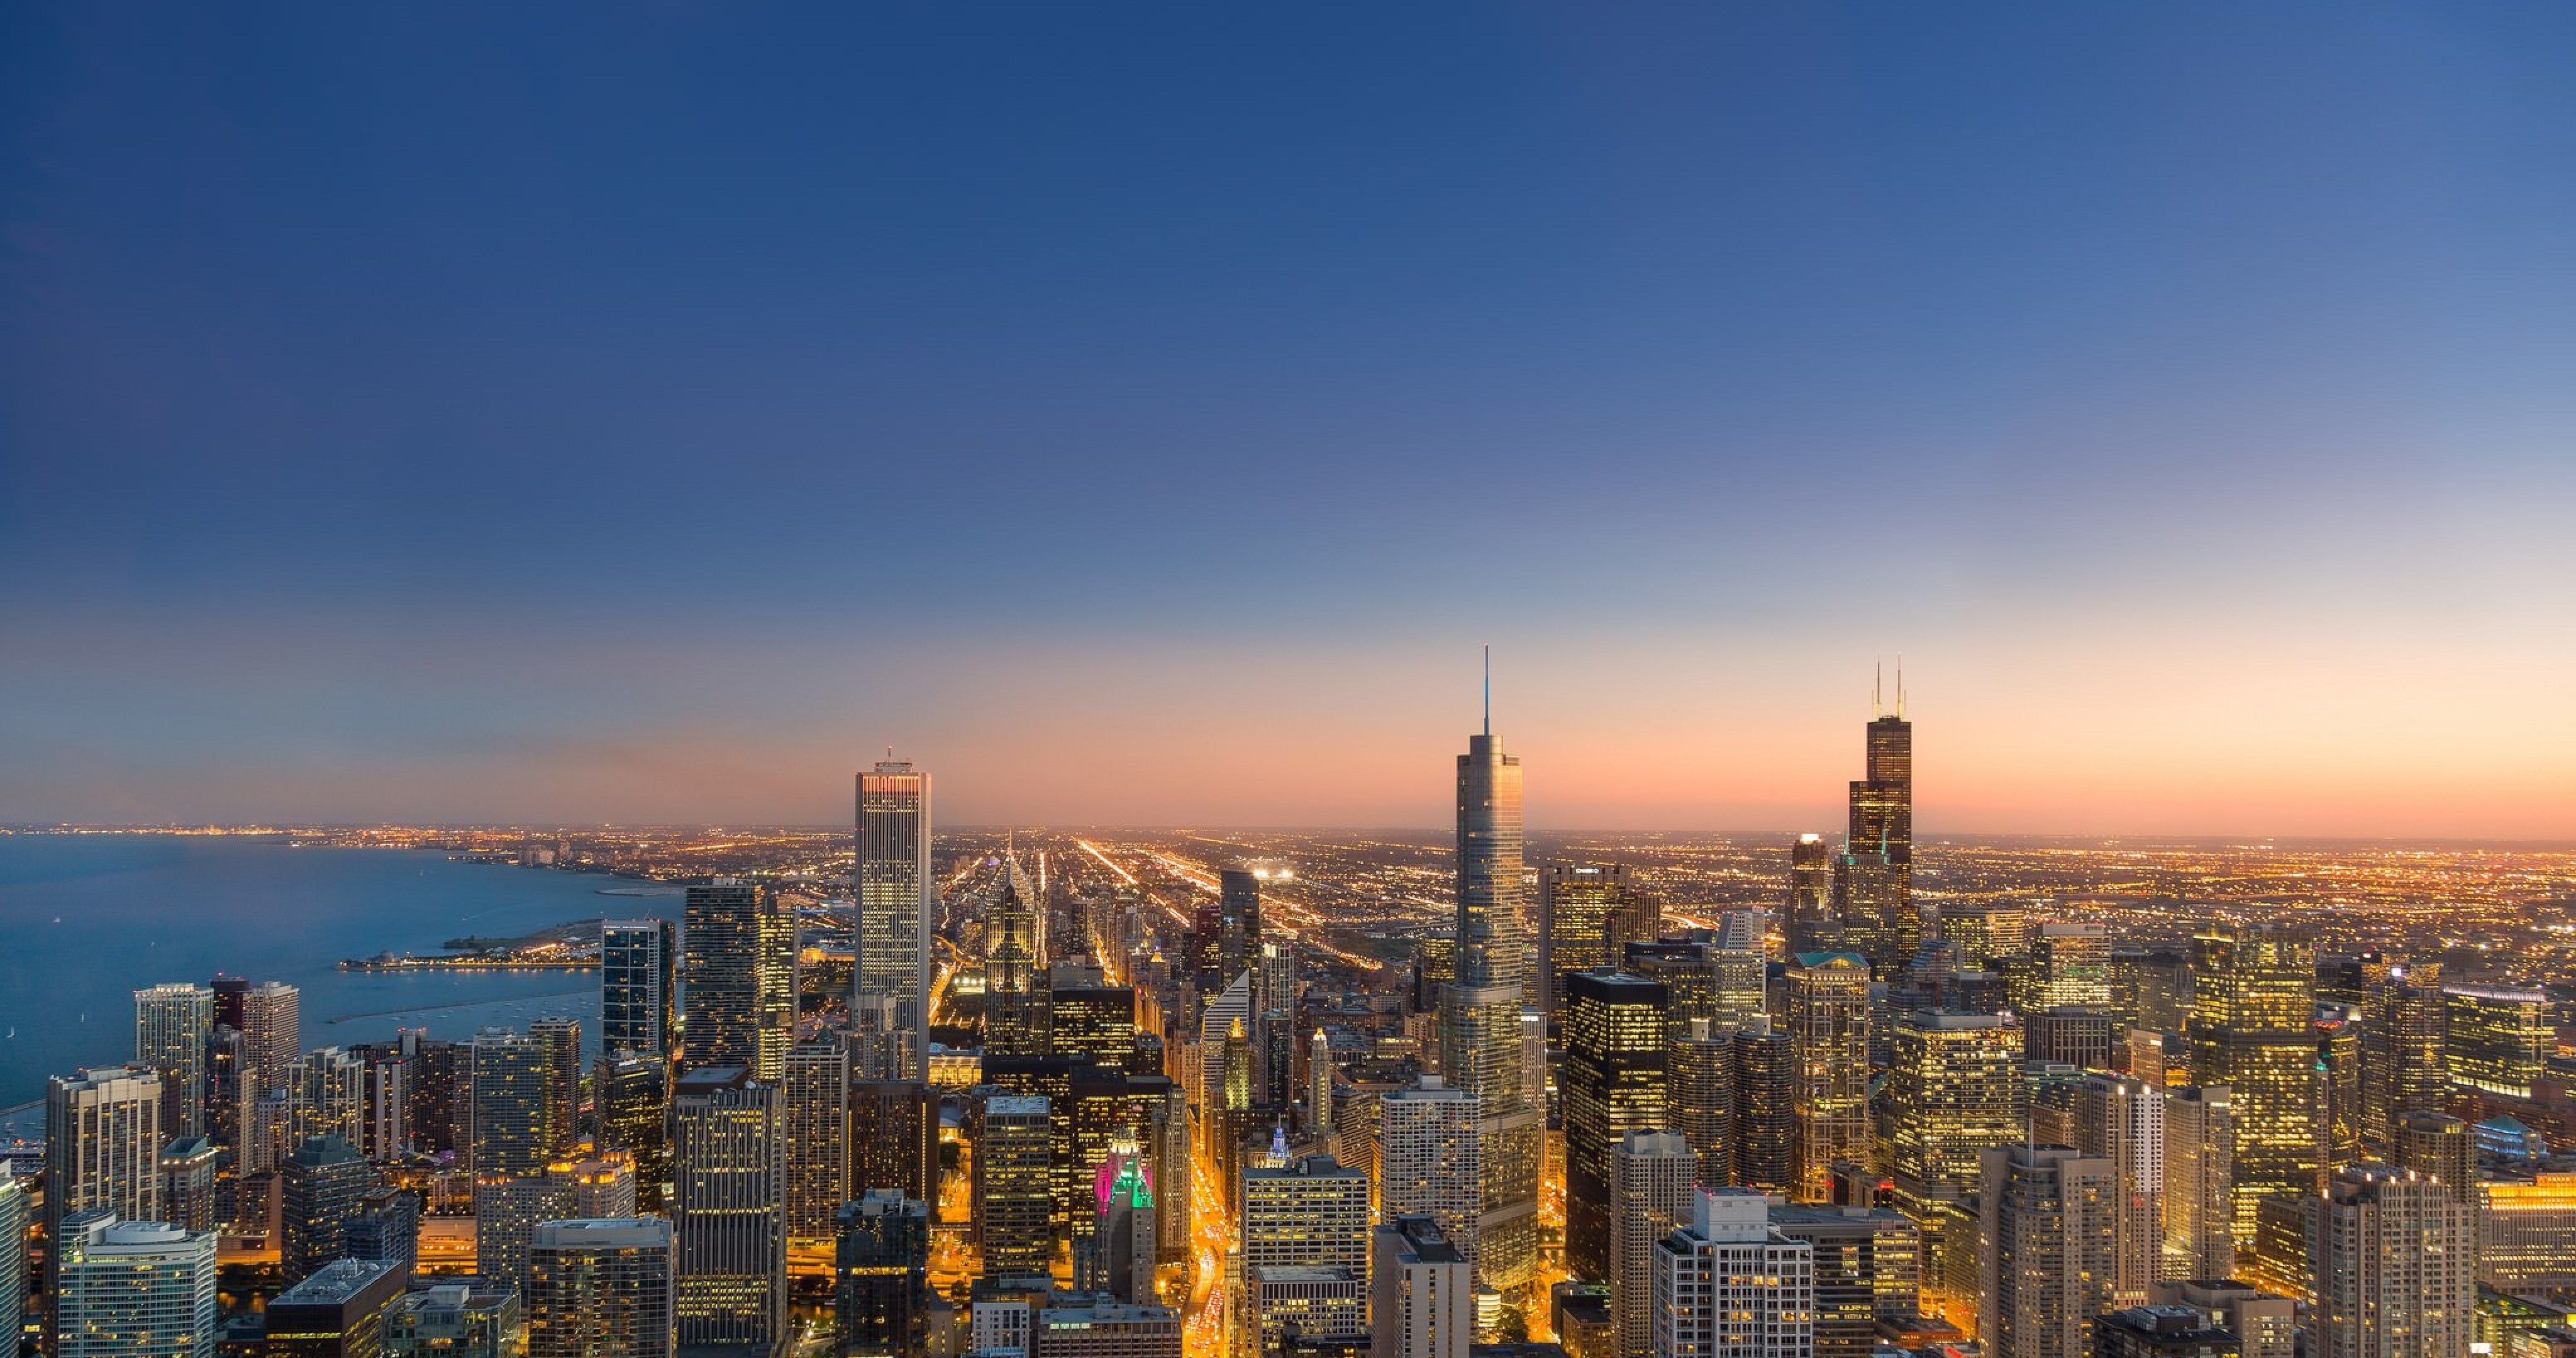 Chicago Evening City Wallpaper 4k Ultra Hd Wallpaper With Images